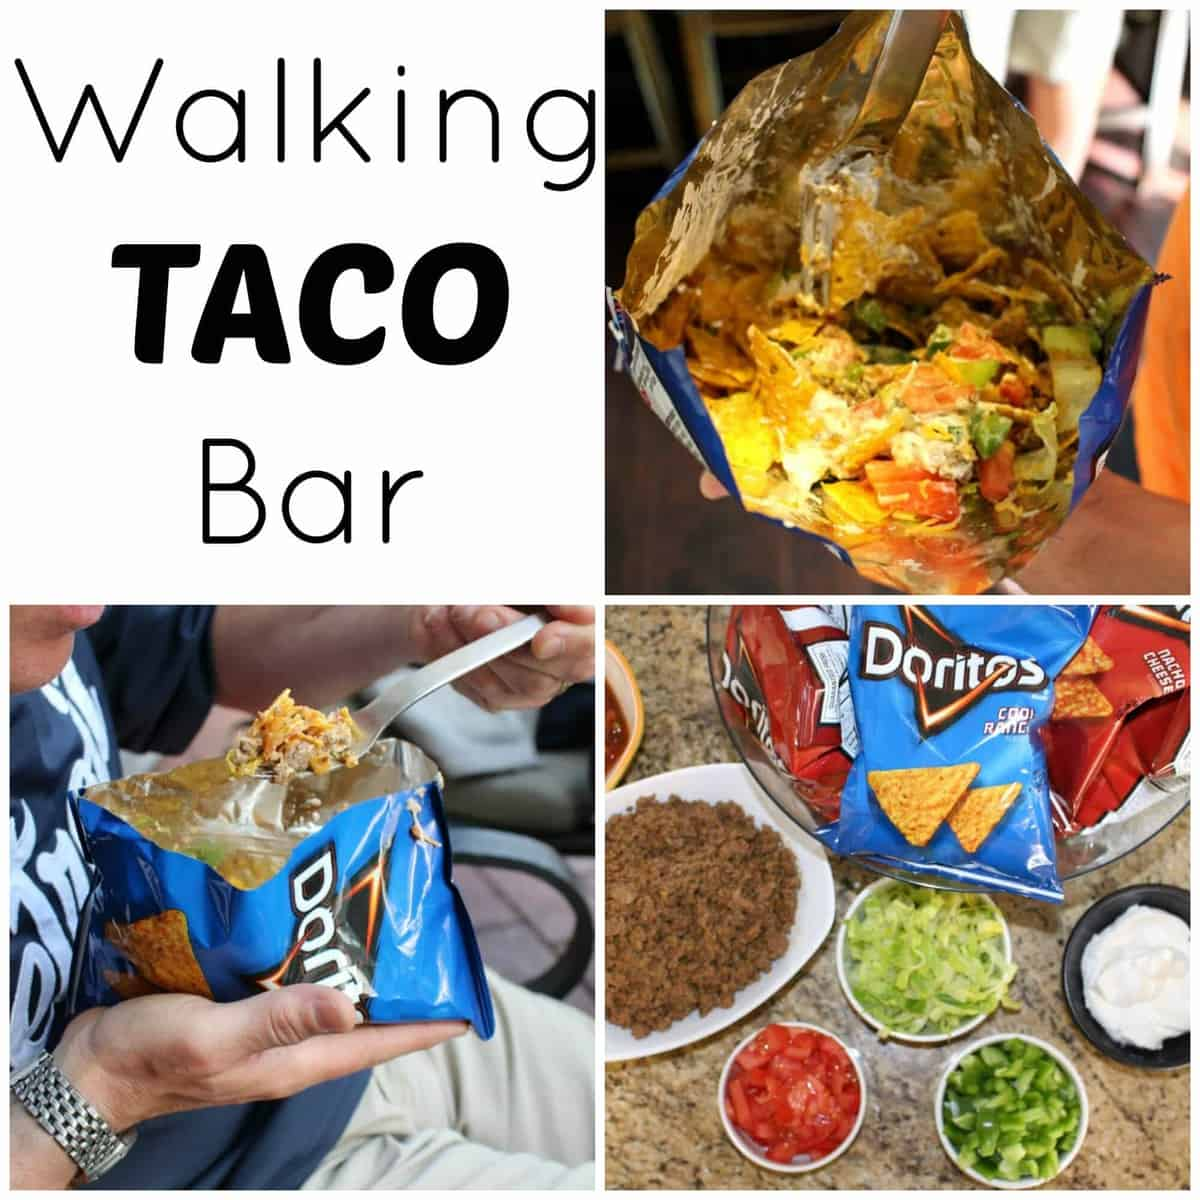 Walking taco bar is the perfect party food recipe to feed a crowd